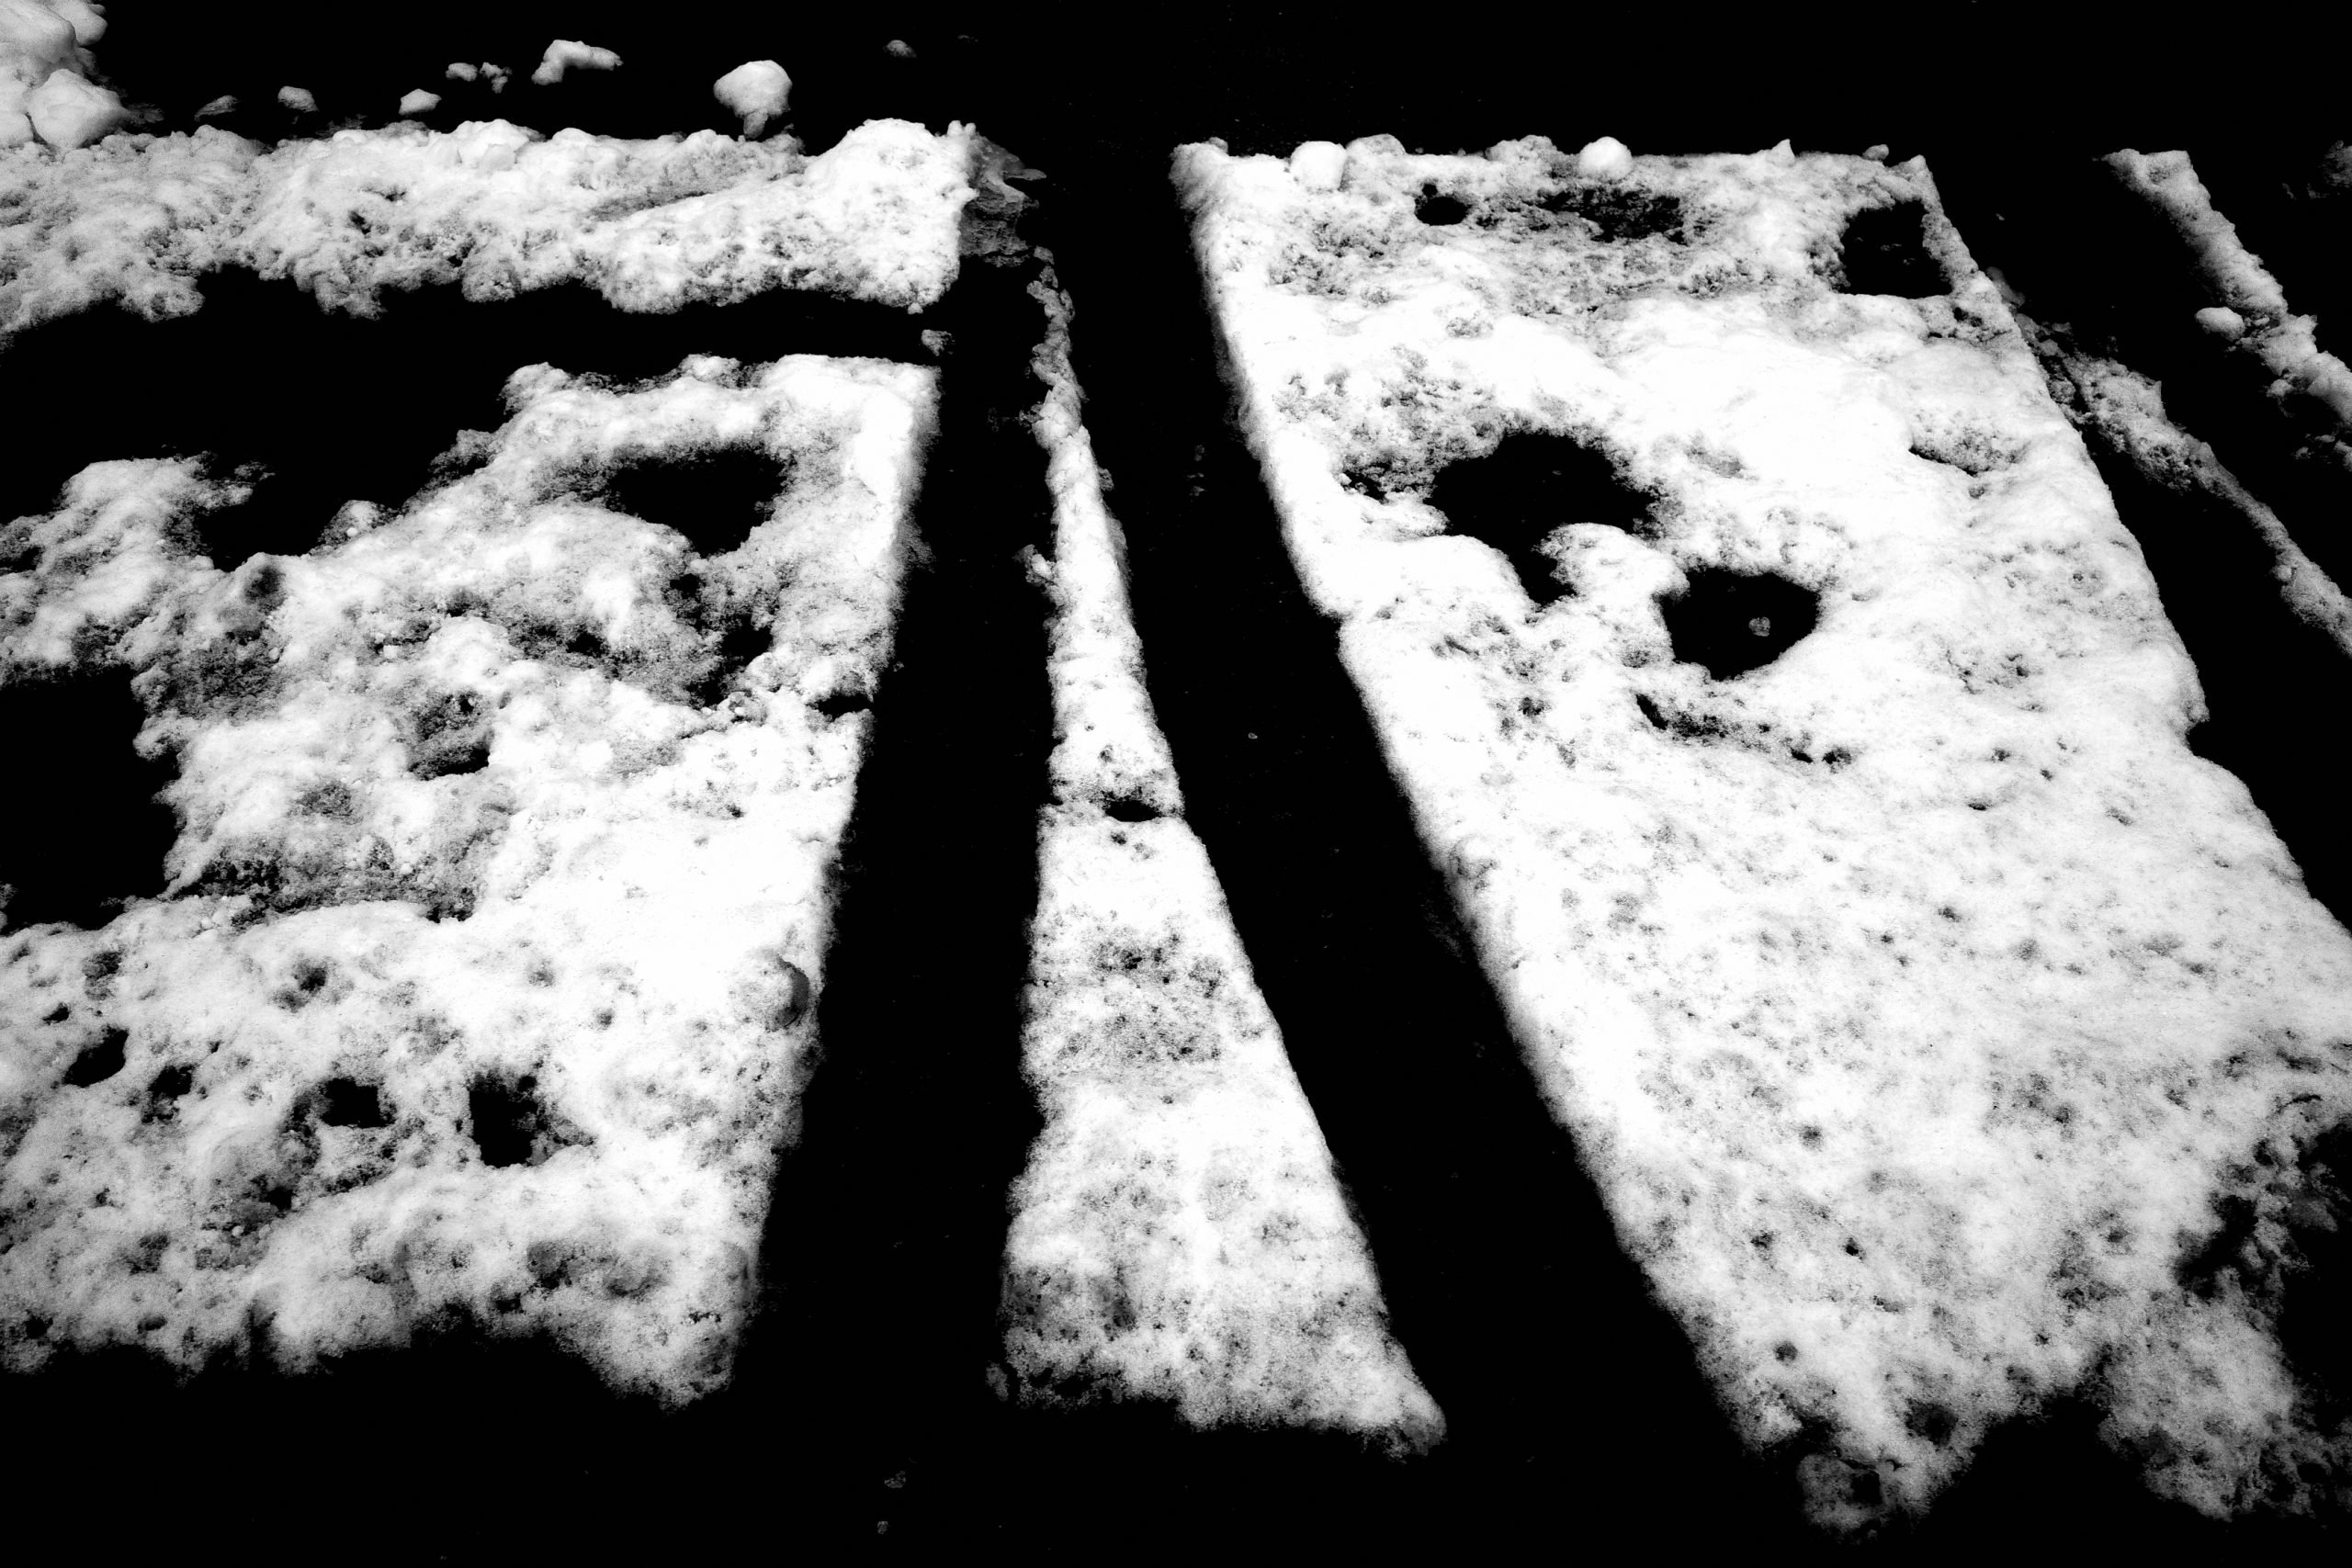 Calligraphy black and white snow